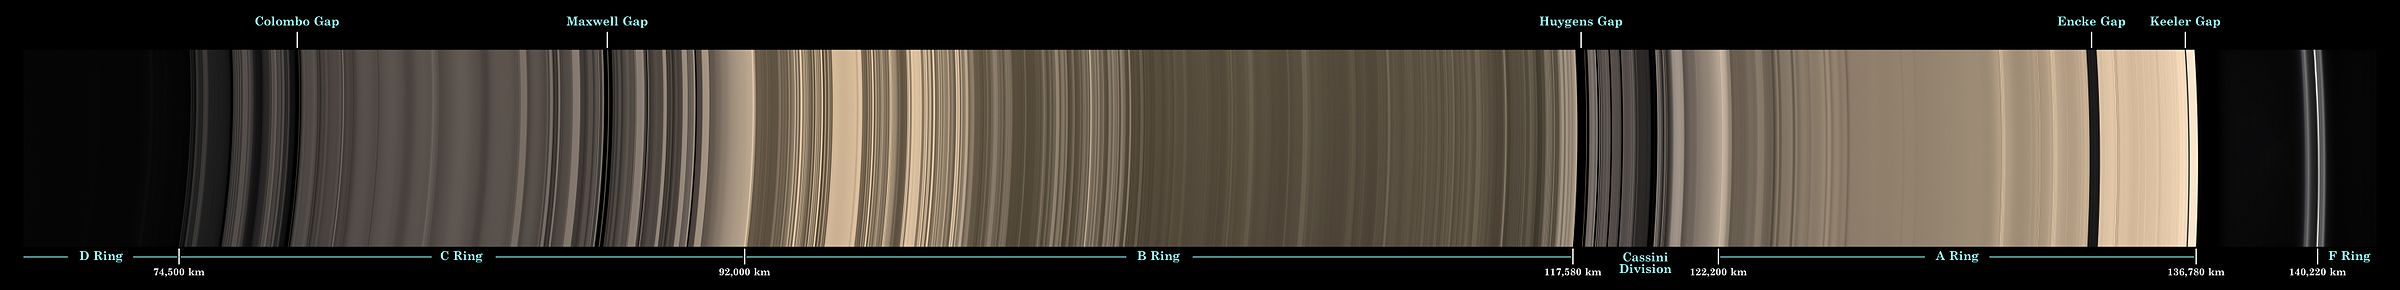 Saturn's rings dark side mosaic.jpg